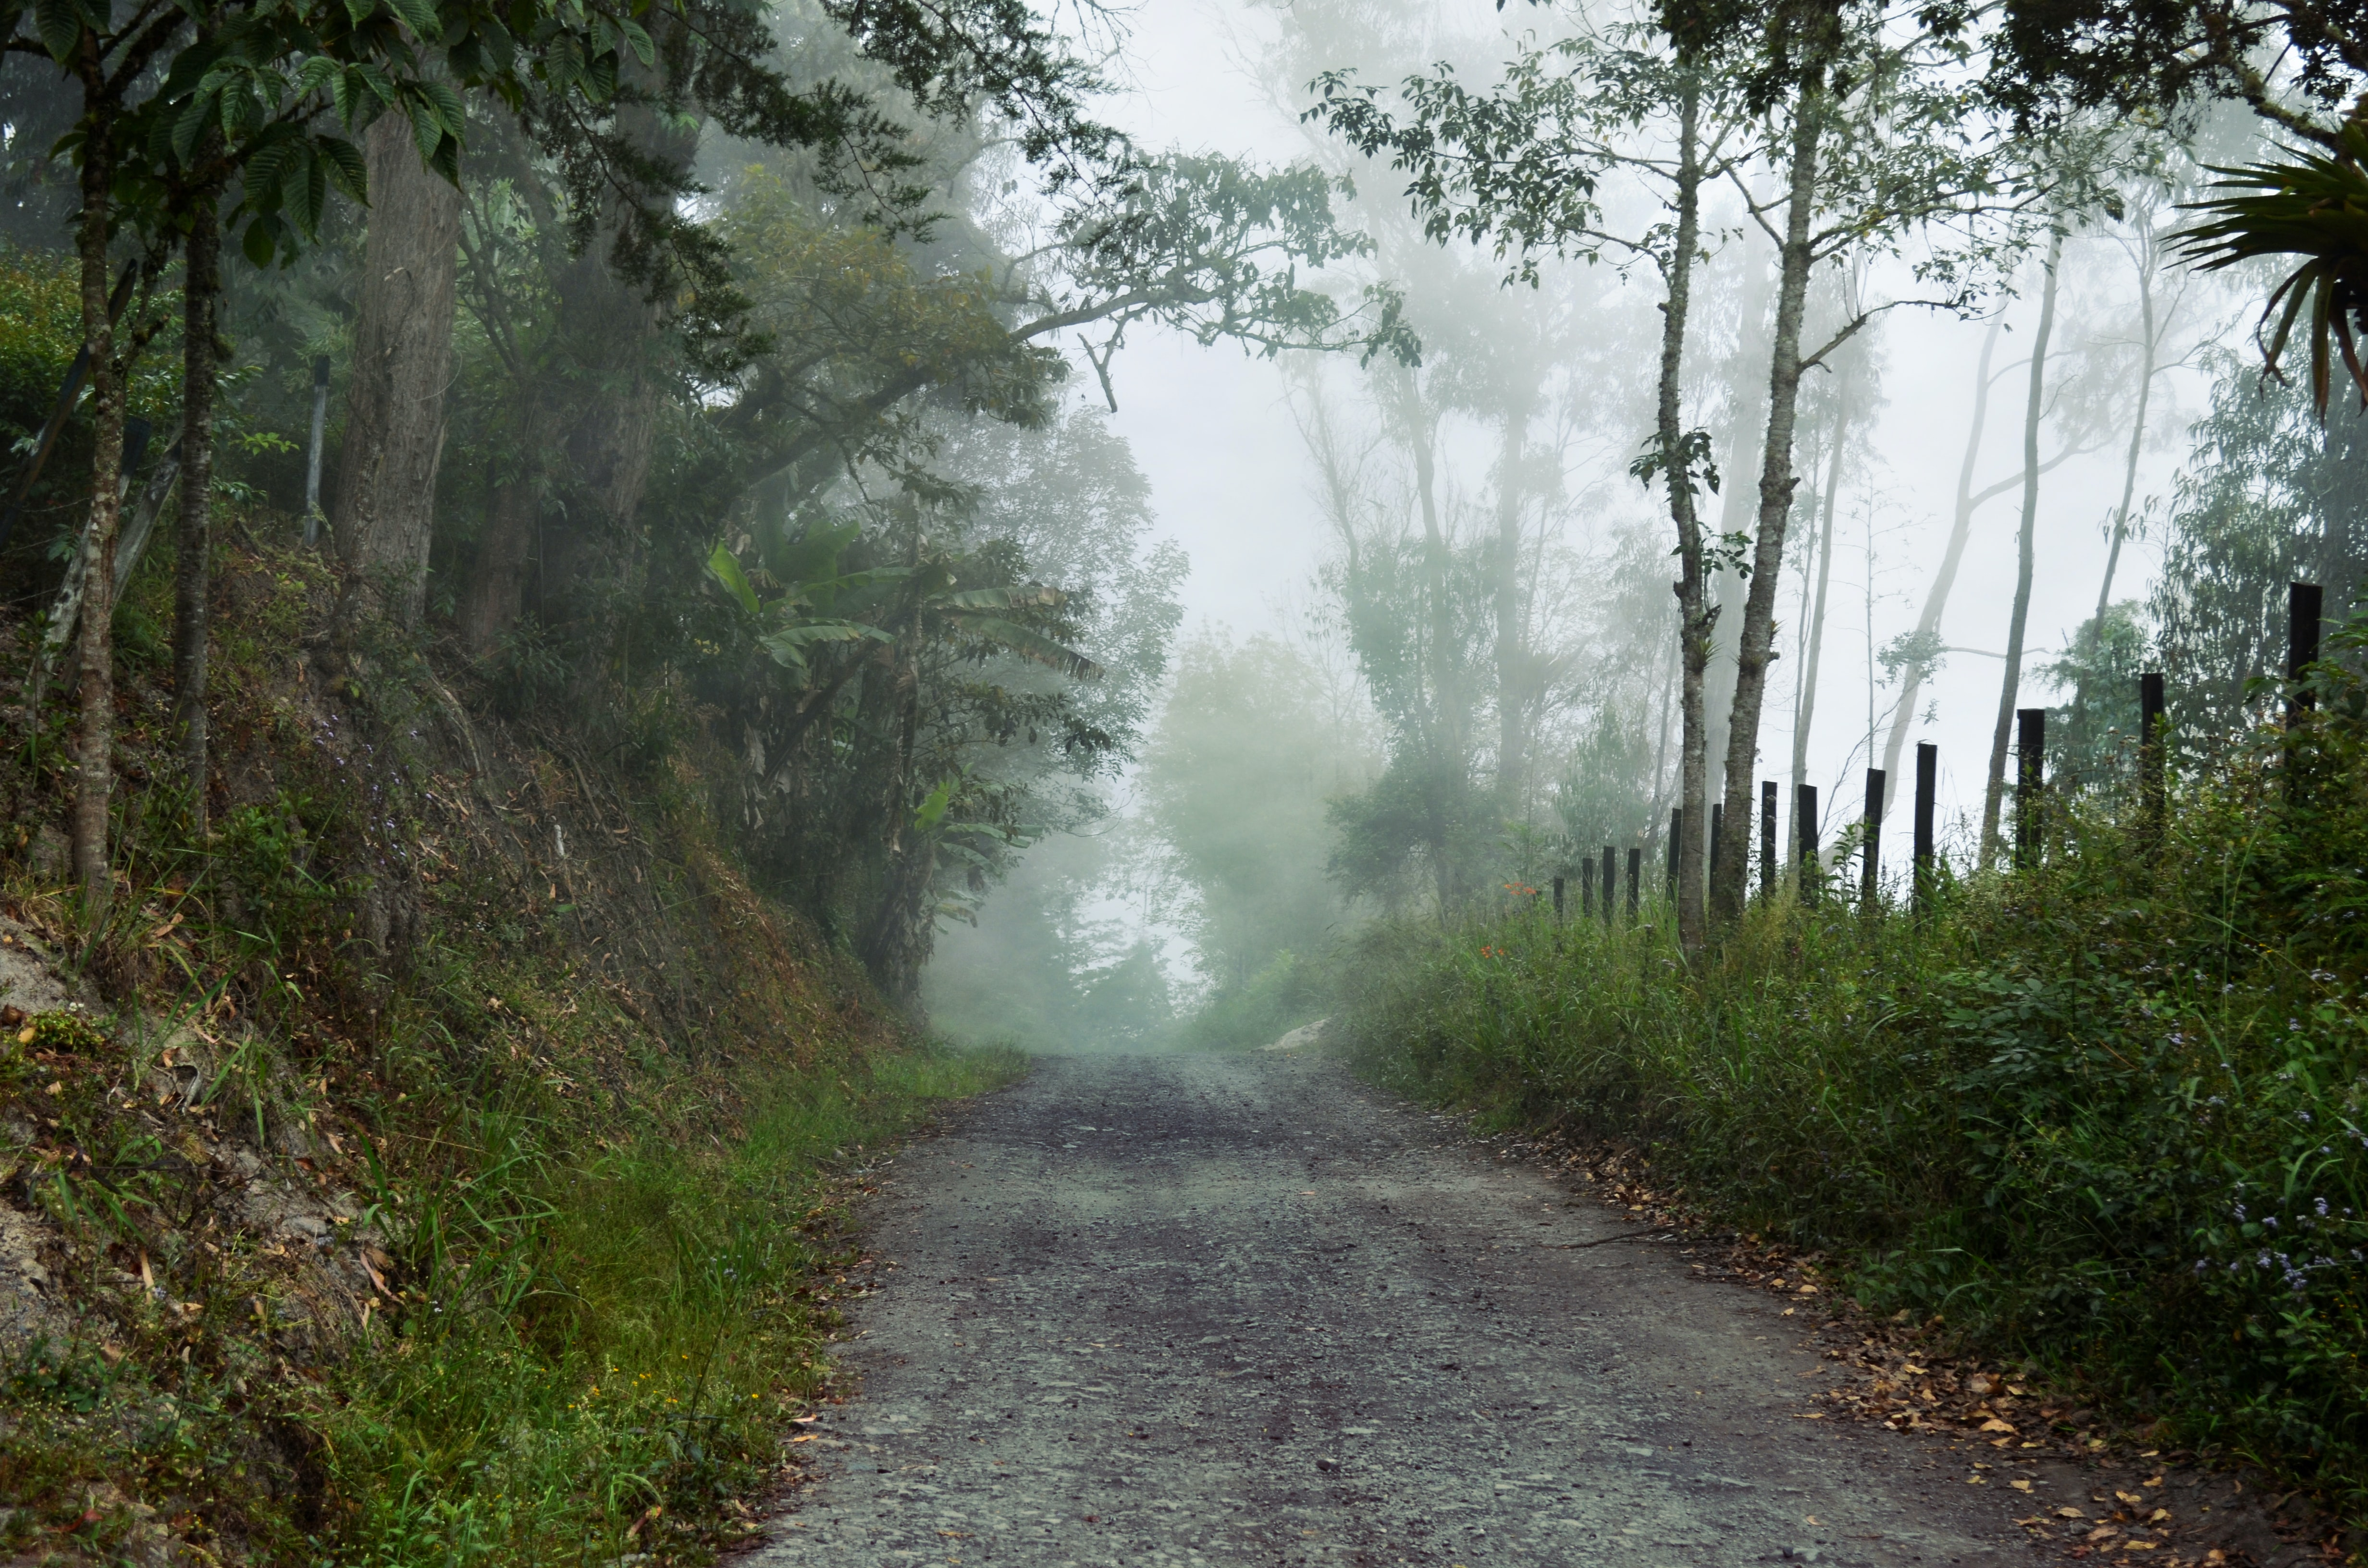 A dirt road in Boyacá lined with trees and grasses